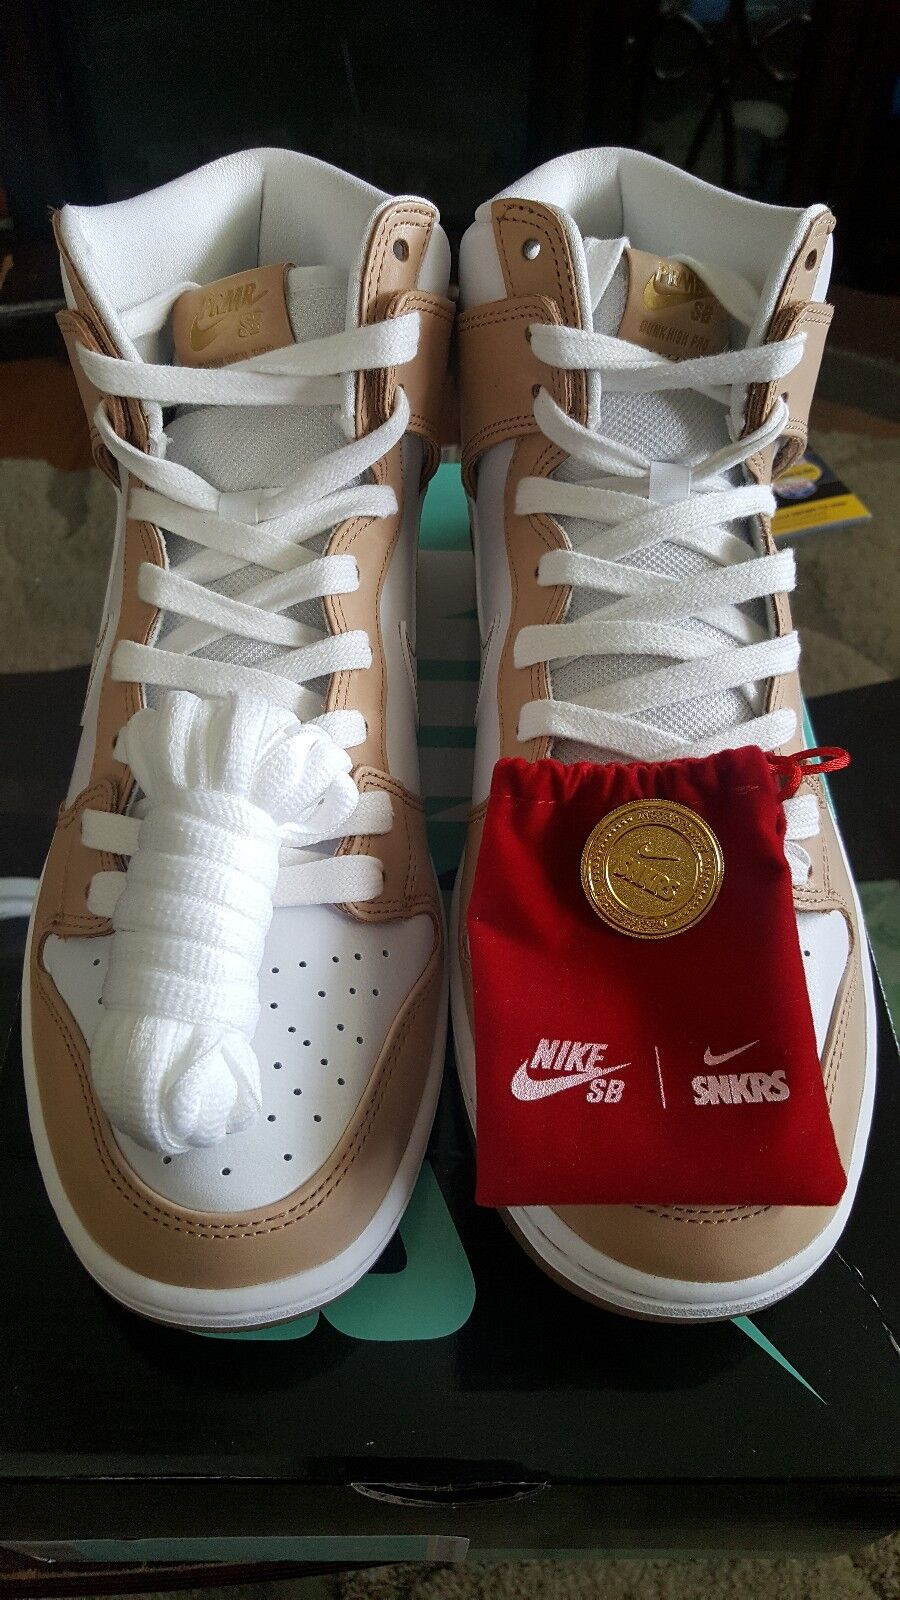 Premier x Nike SB Dunk High Win Some Lose Some Premium Size 11